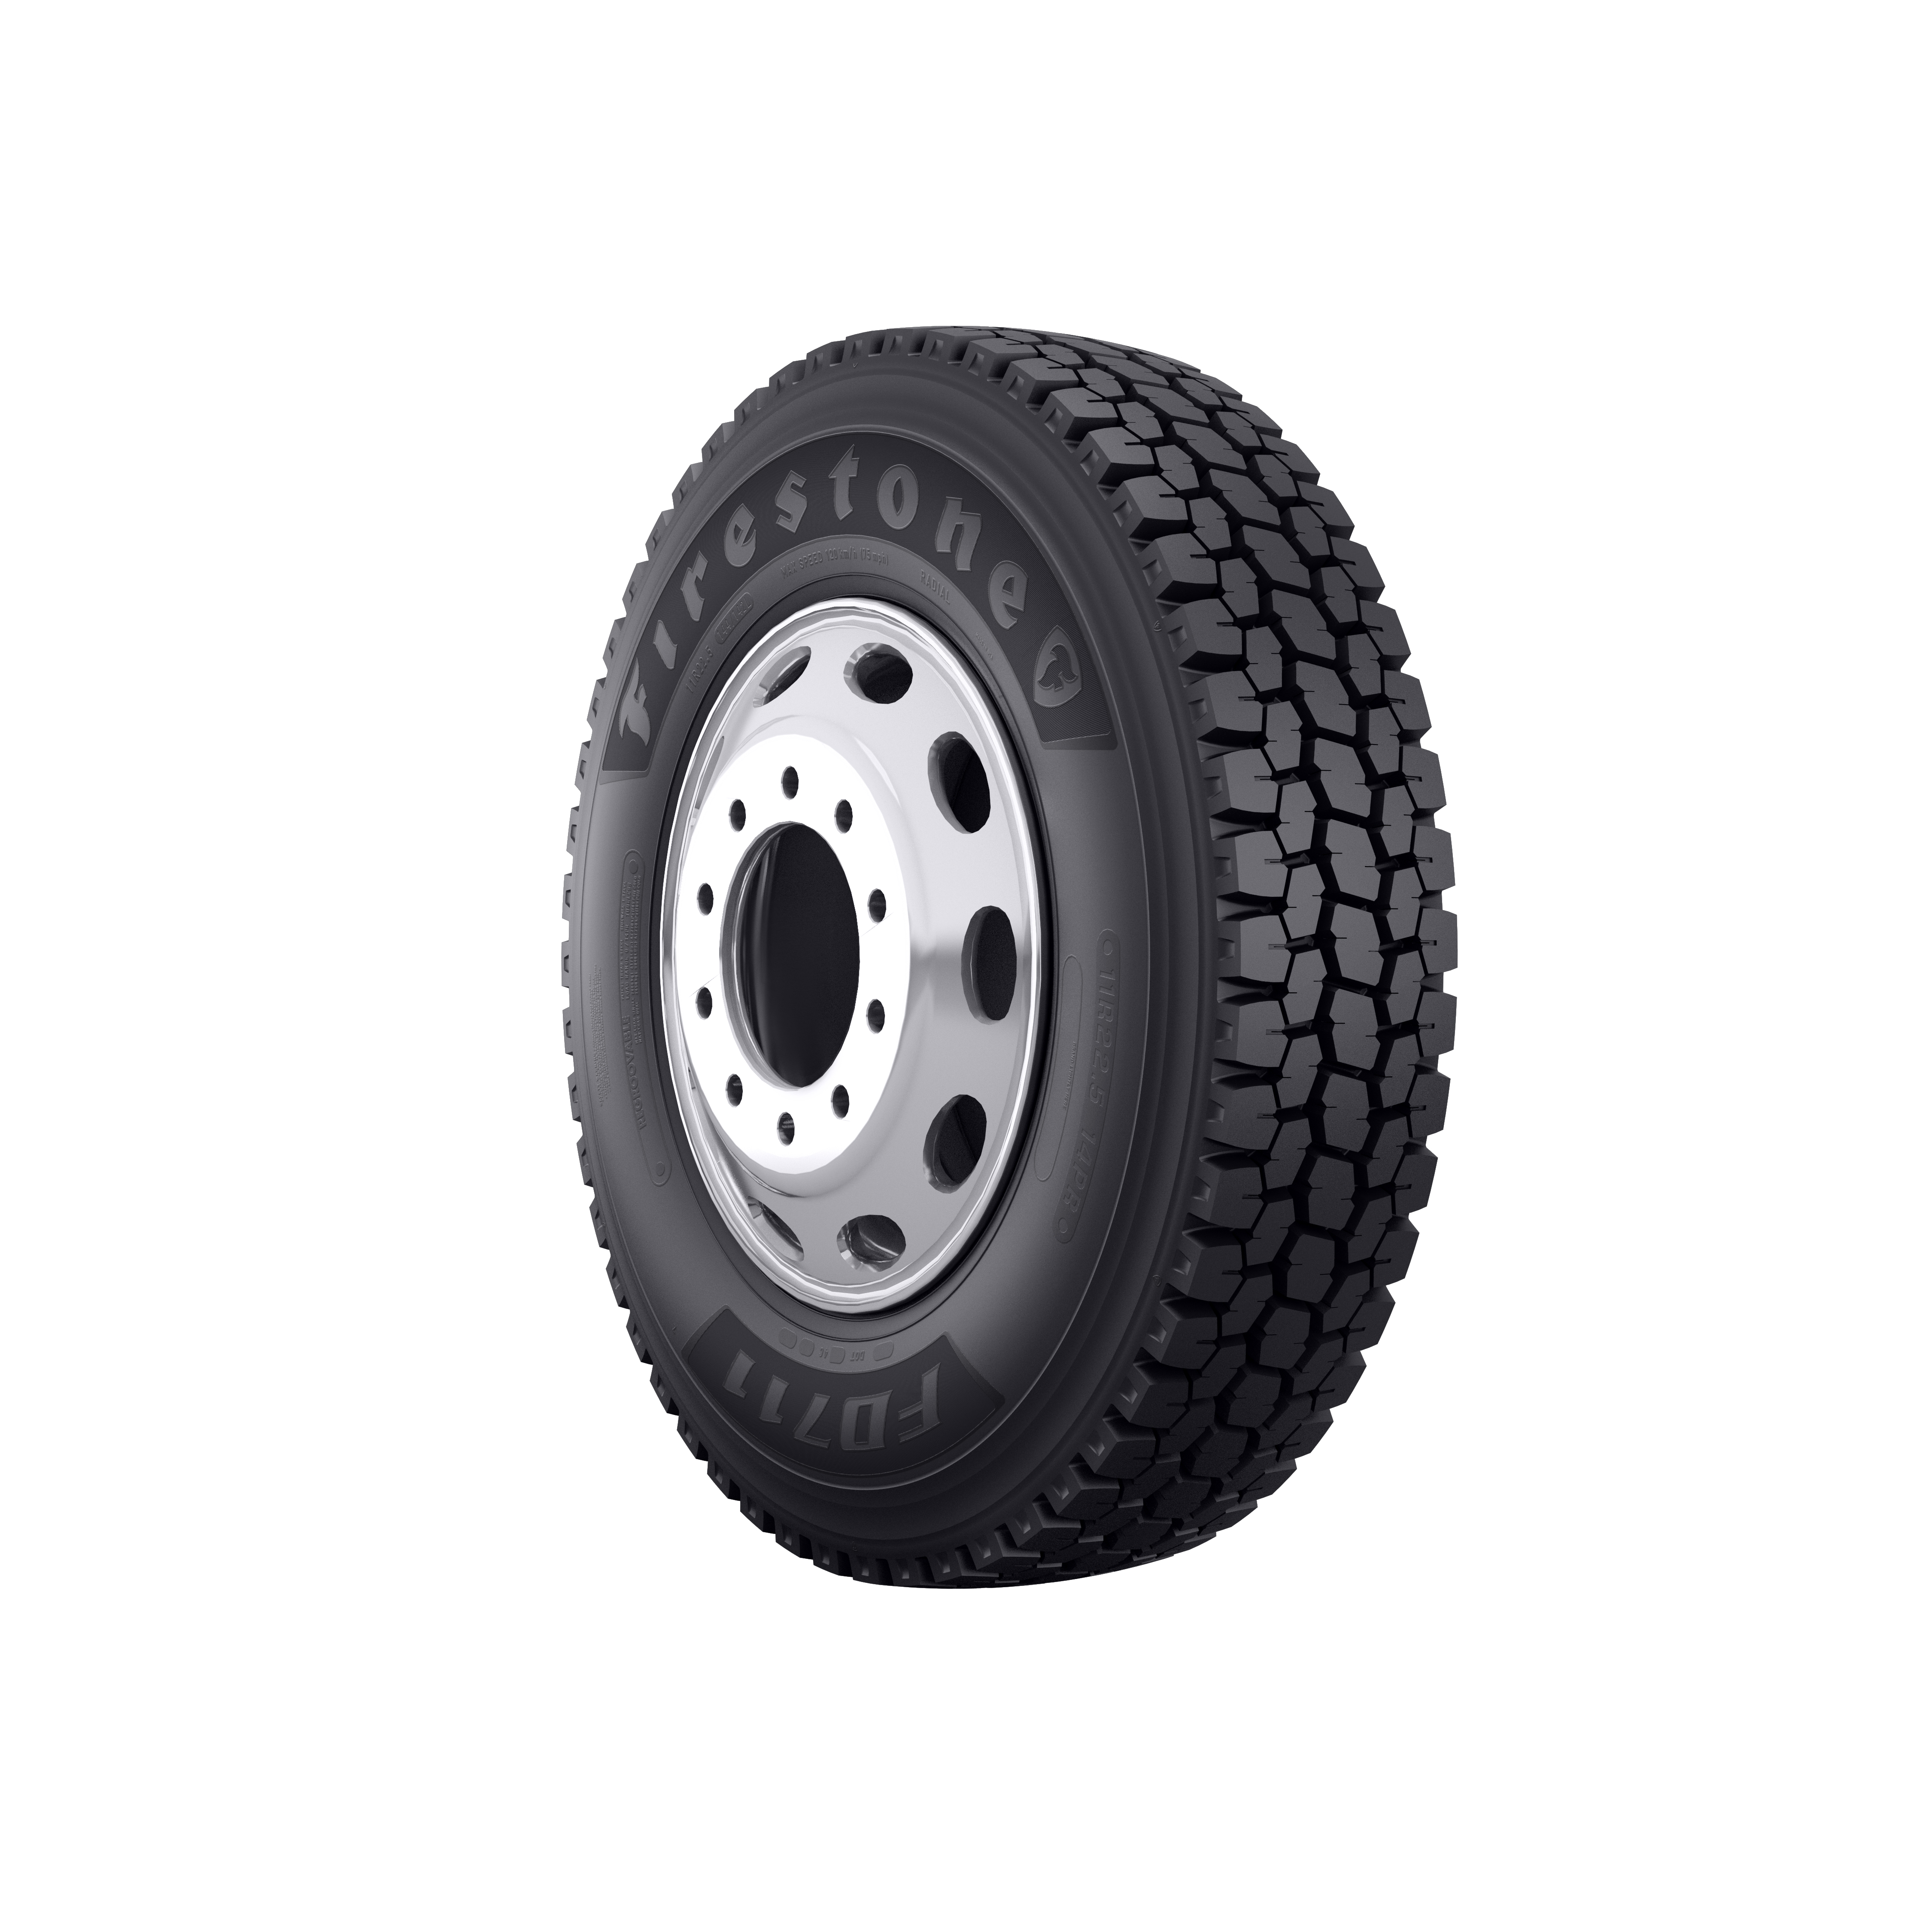 Bridgestone Introduces Firestone FD711 Drive Tire